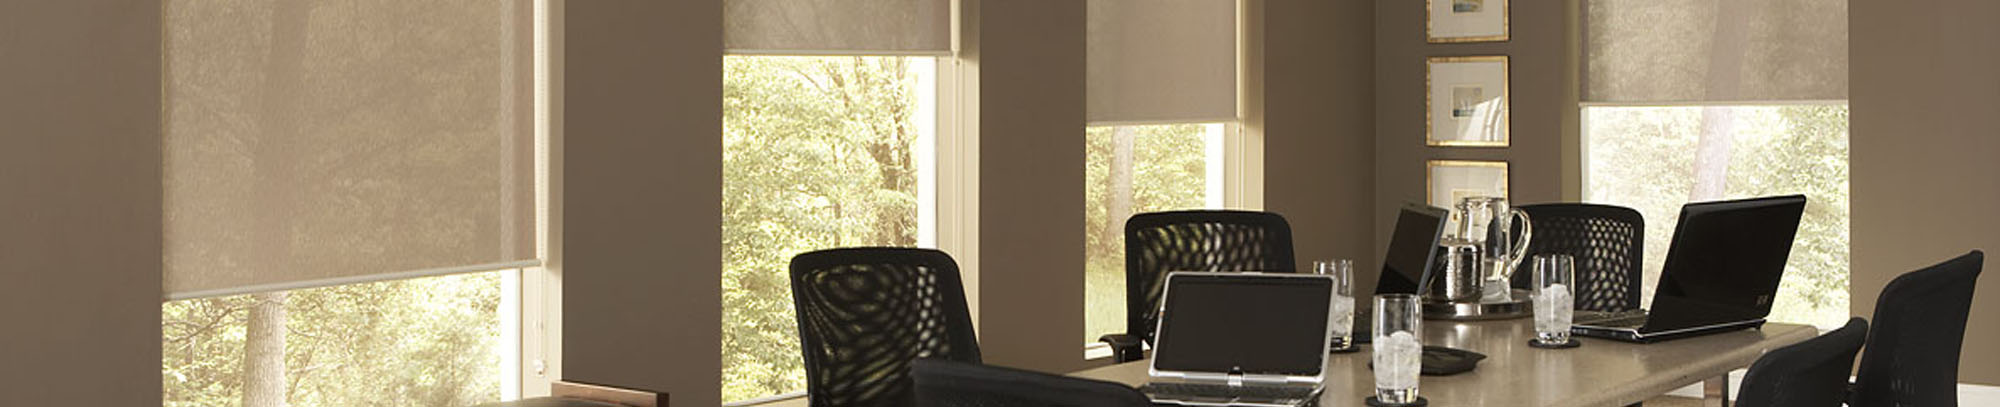 Motorized Shade in Office Setting